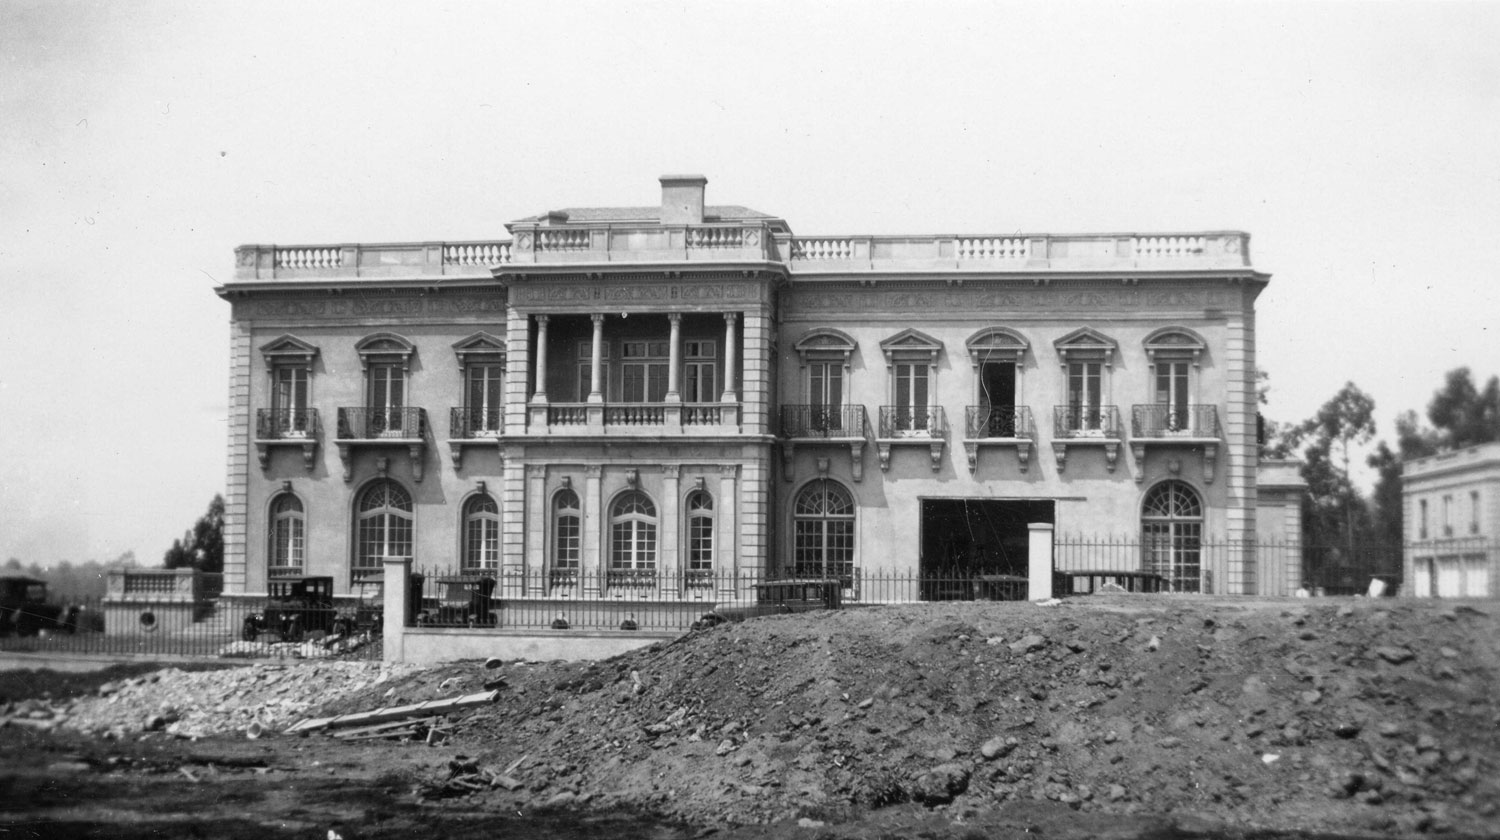 Botiller mansion under construction